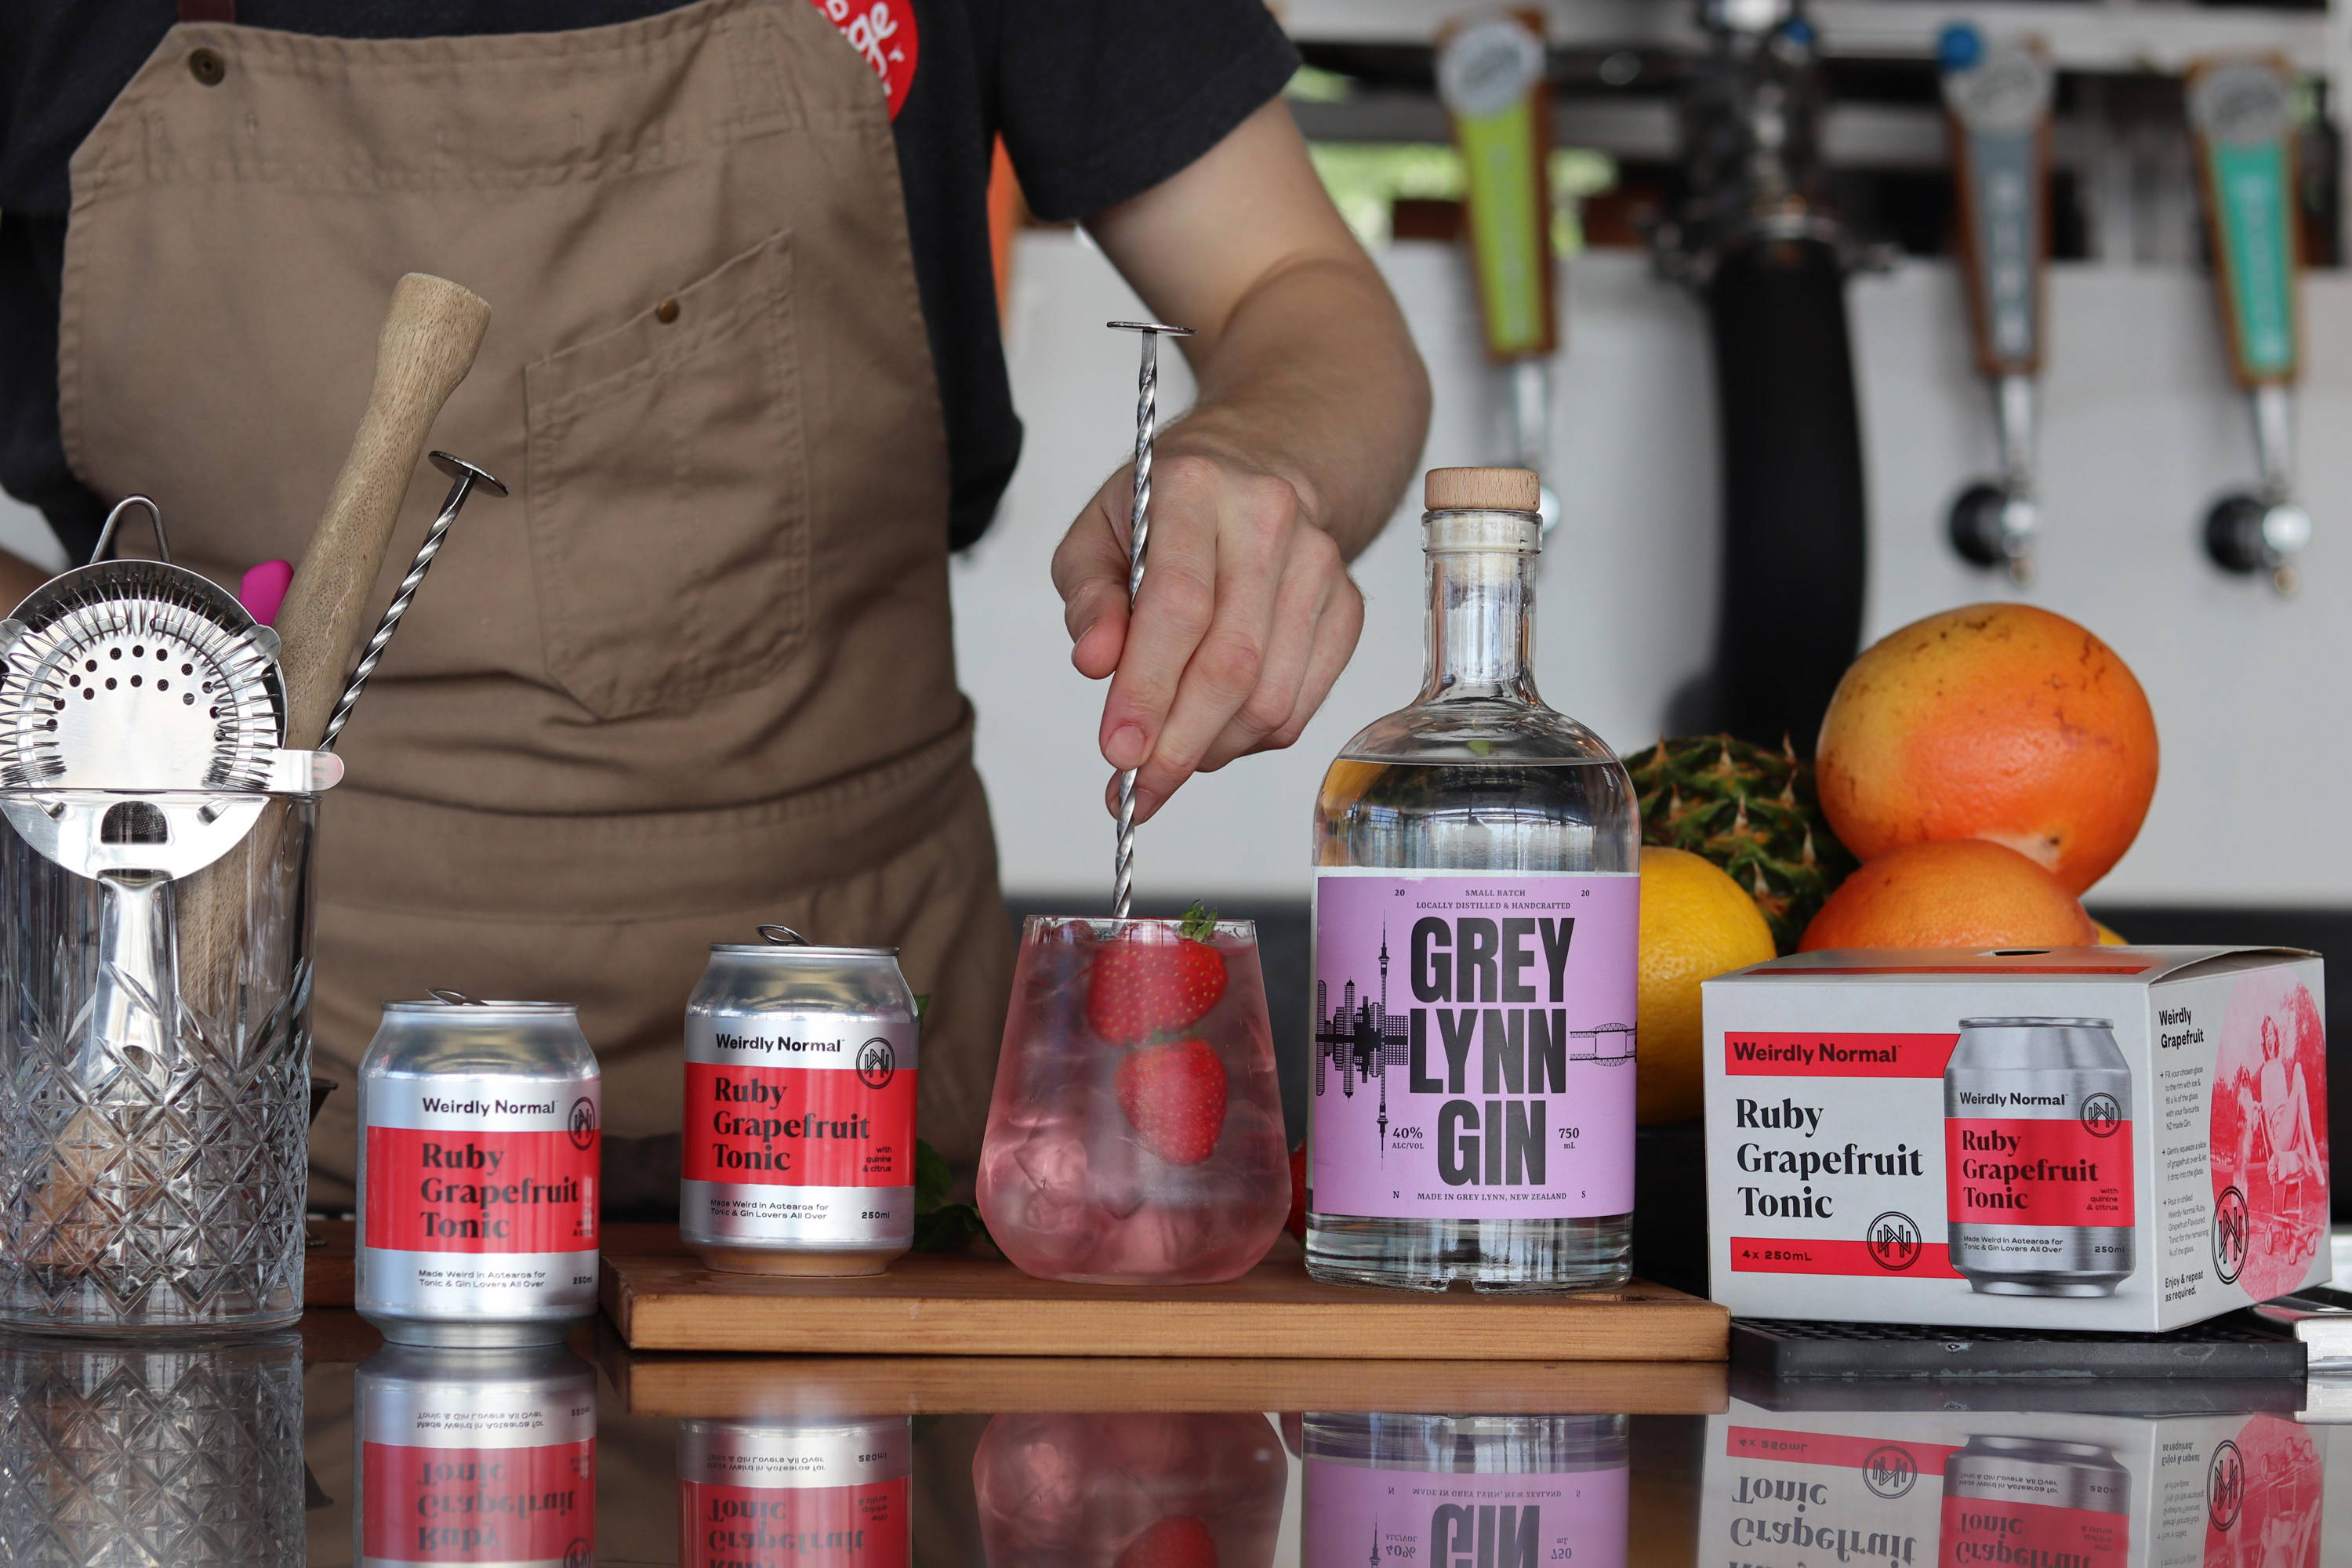 Weirdly Normal Ruby Grapefruit Tonic